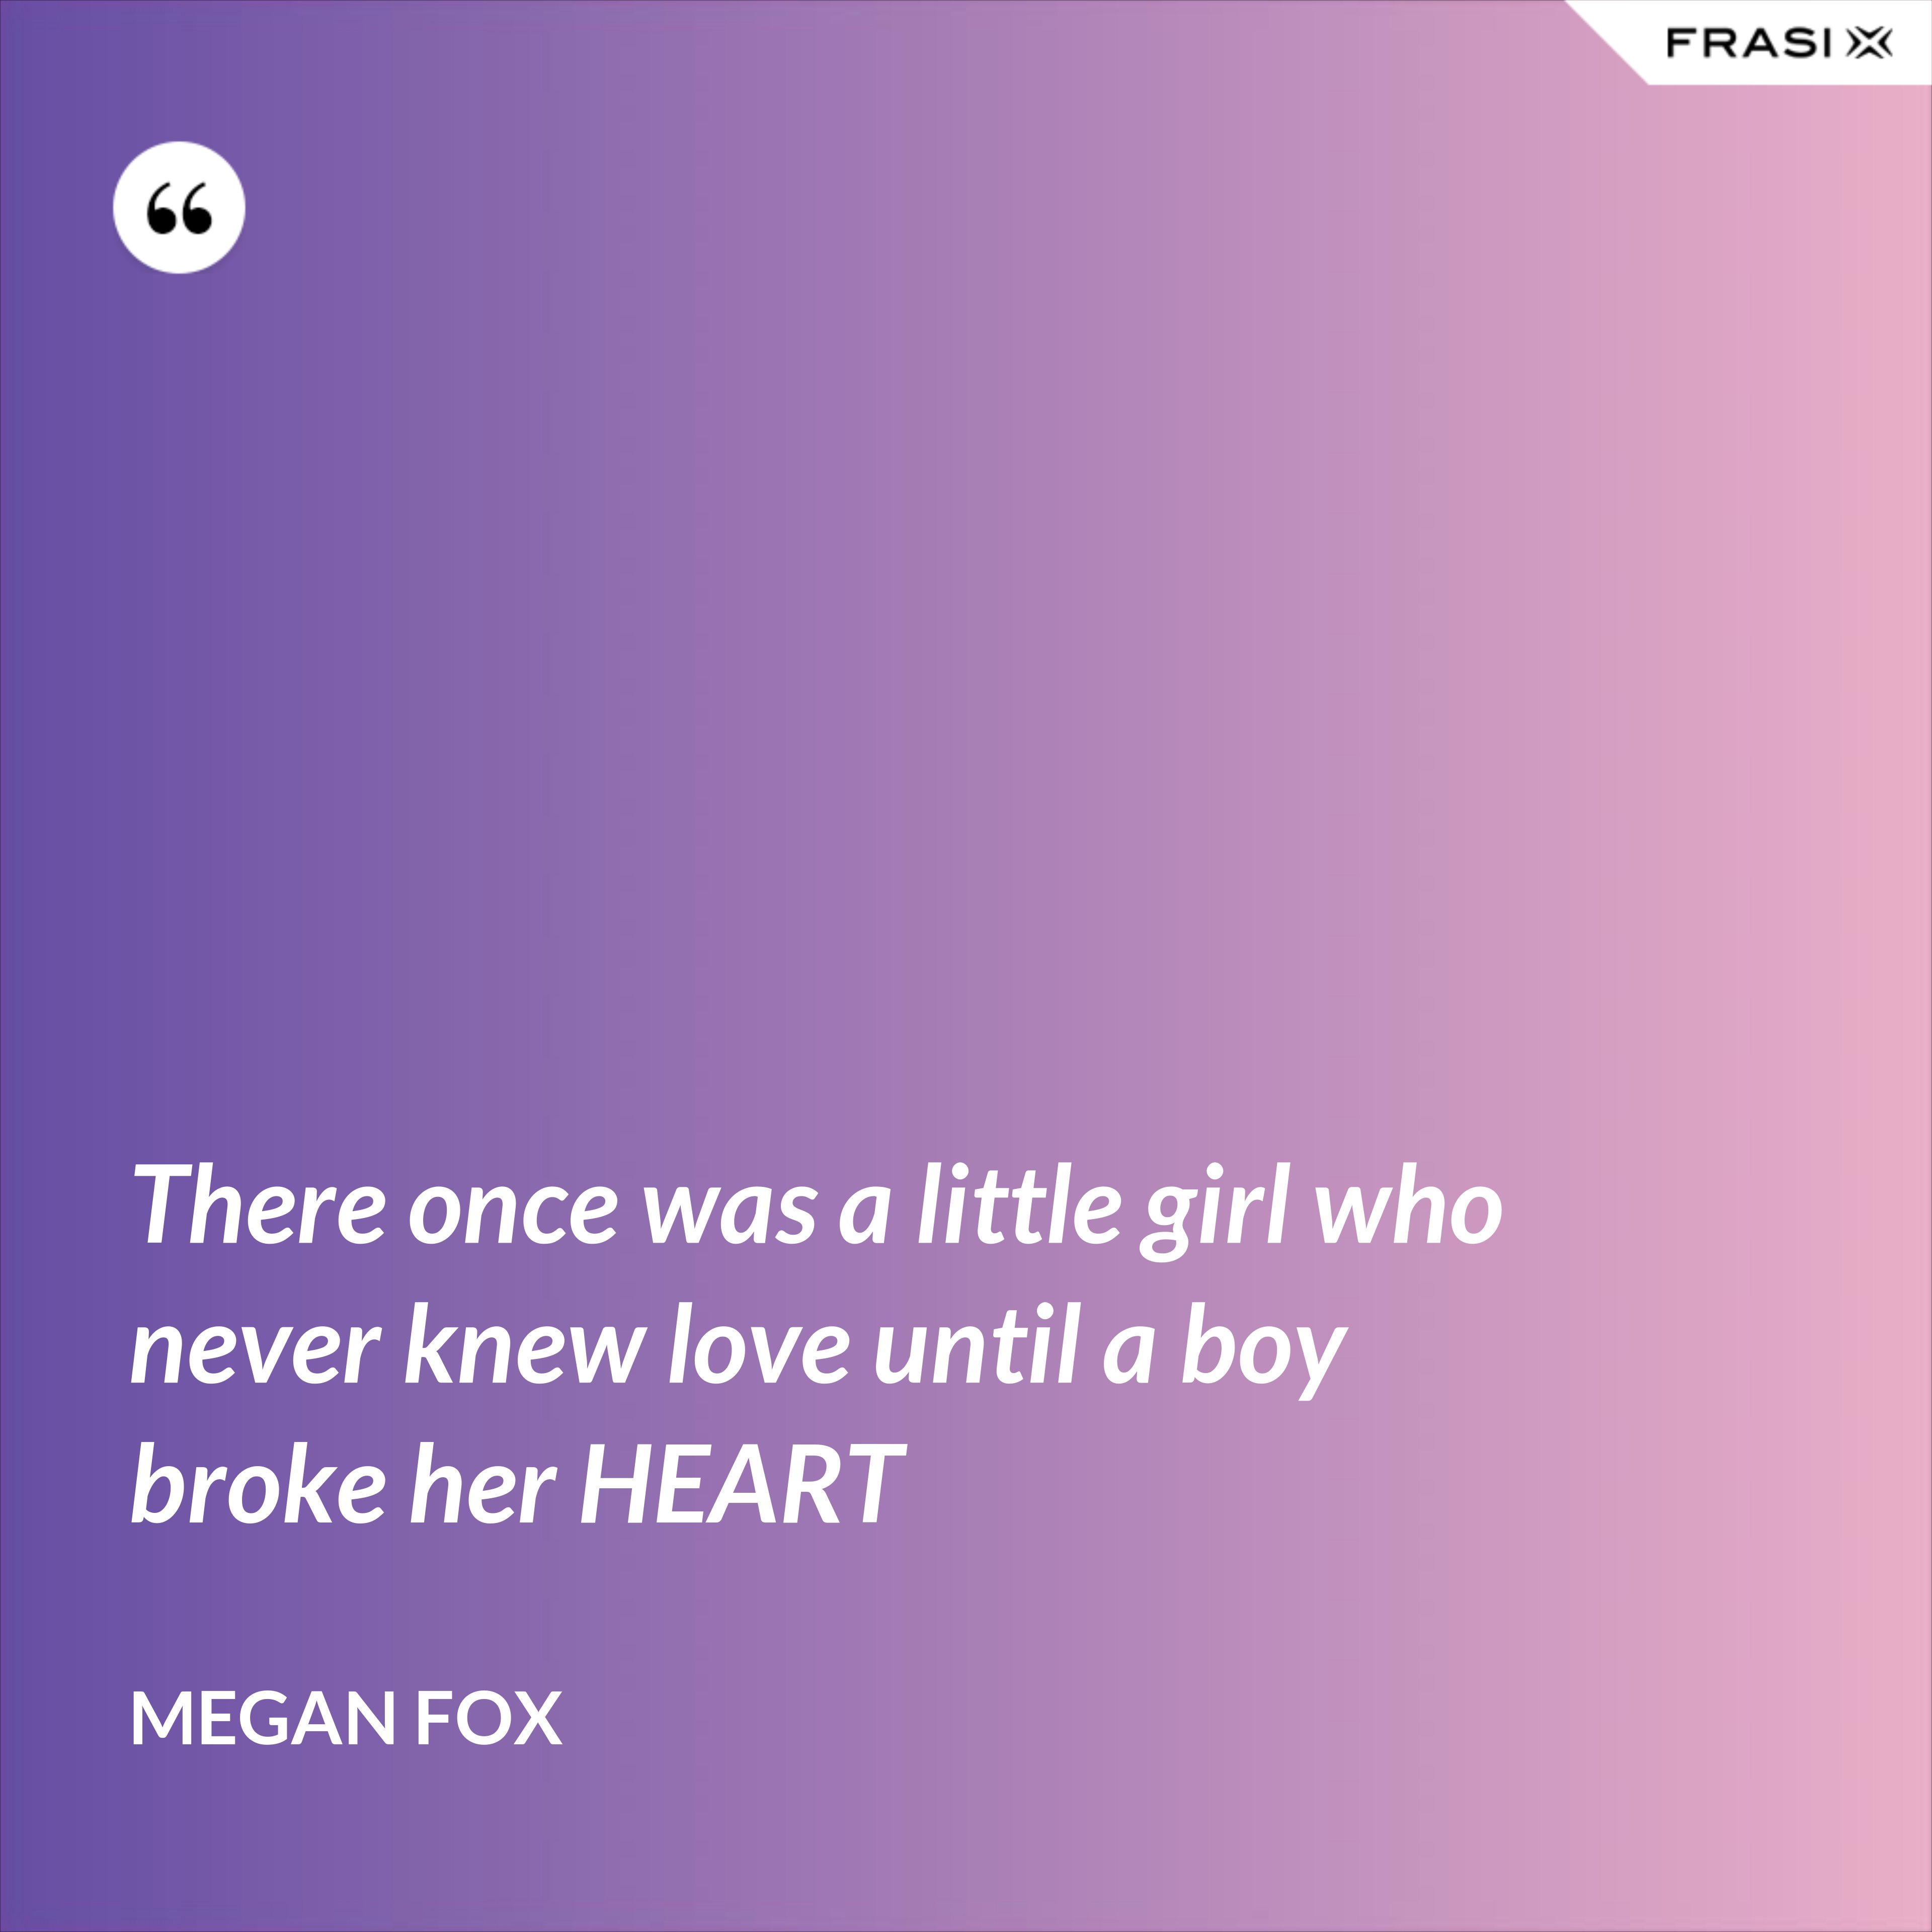 There once was a little girl who never knew love until a boy broke her HEART - Megan Fox